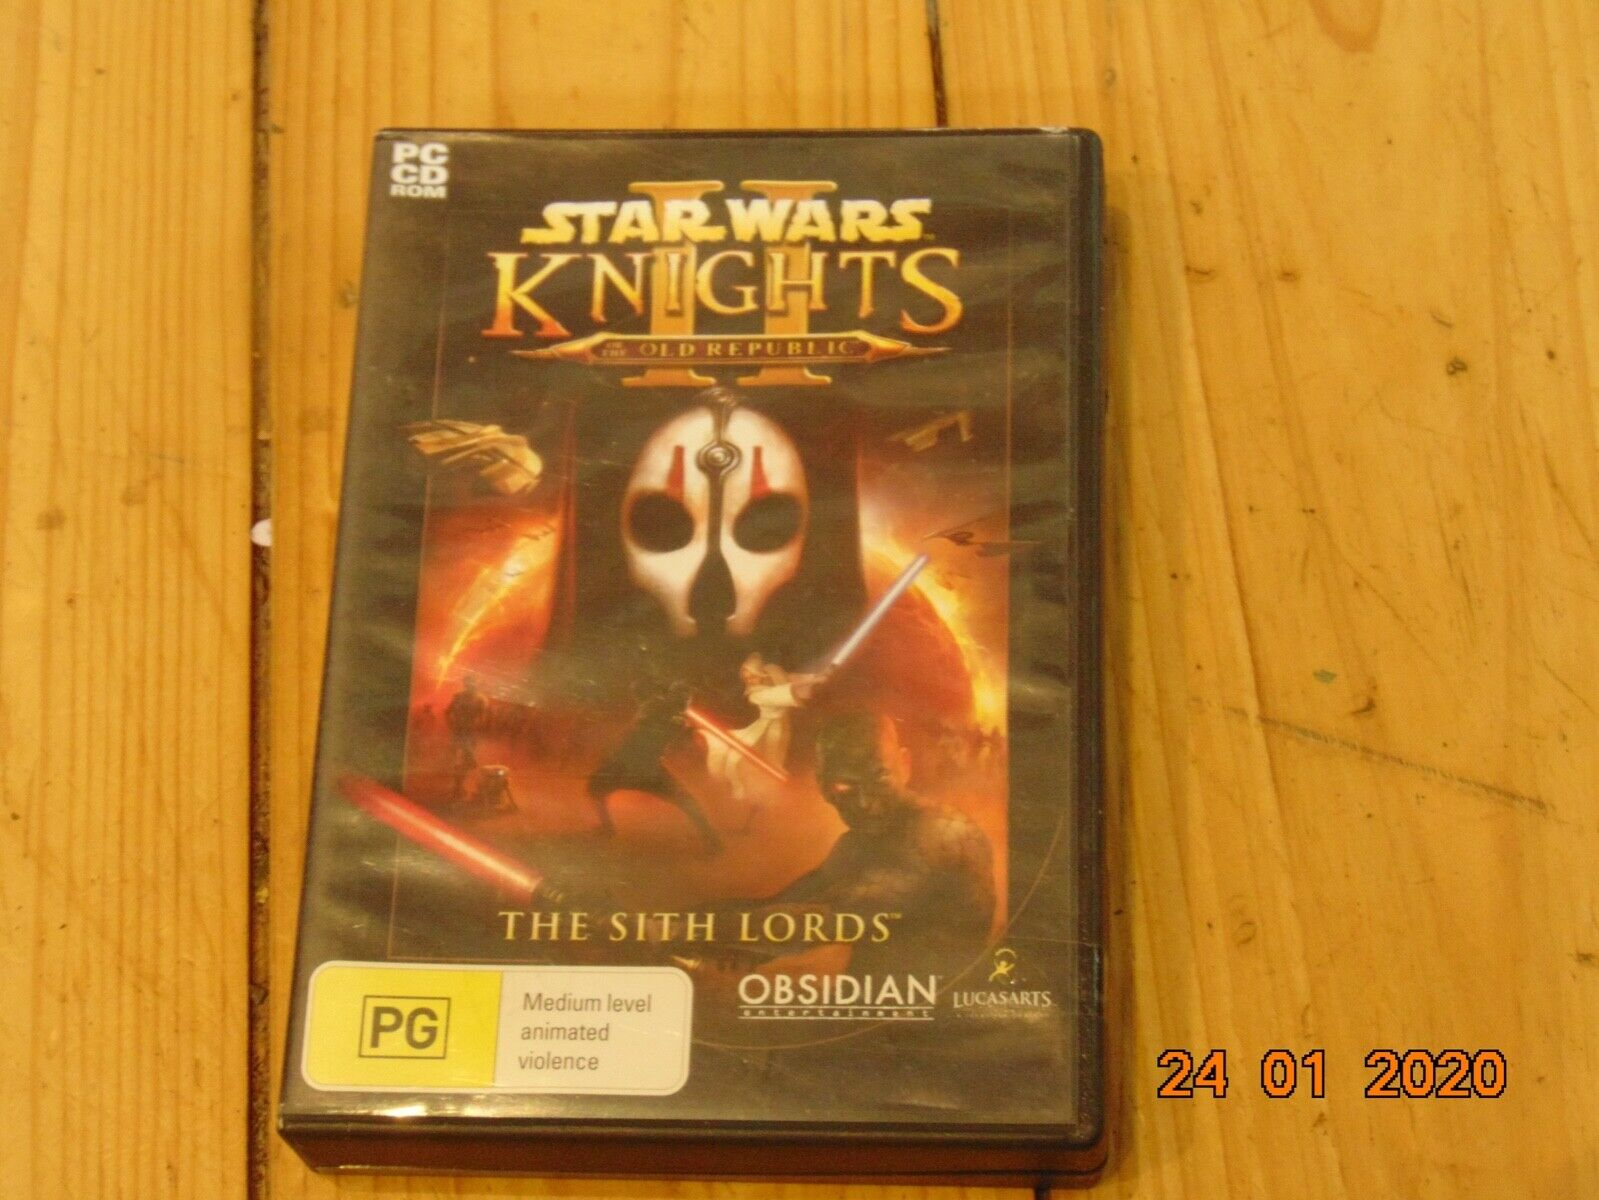 Computer Games - STAR WARS Knights Of The Old Republic II 2 The Sith Lords PC CD-ROM RPG Game